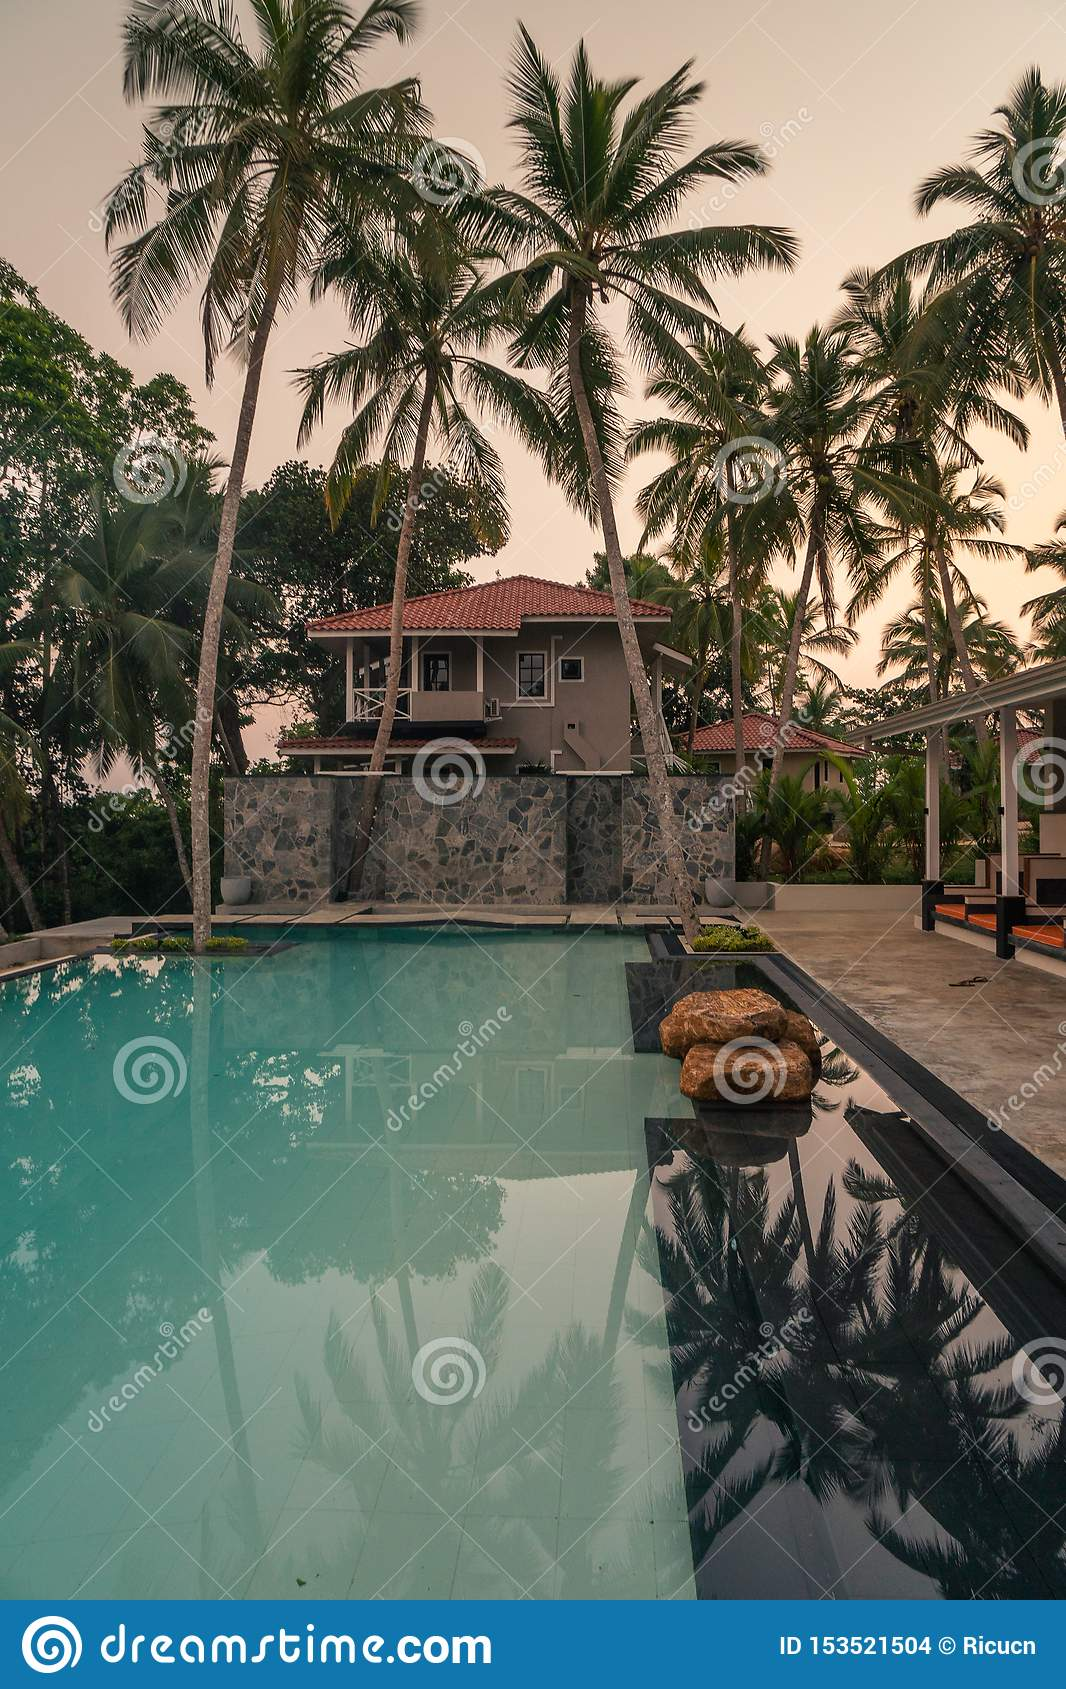 Luxury Resort With Swimming Pool And Tropical Landscape Palm